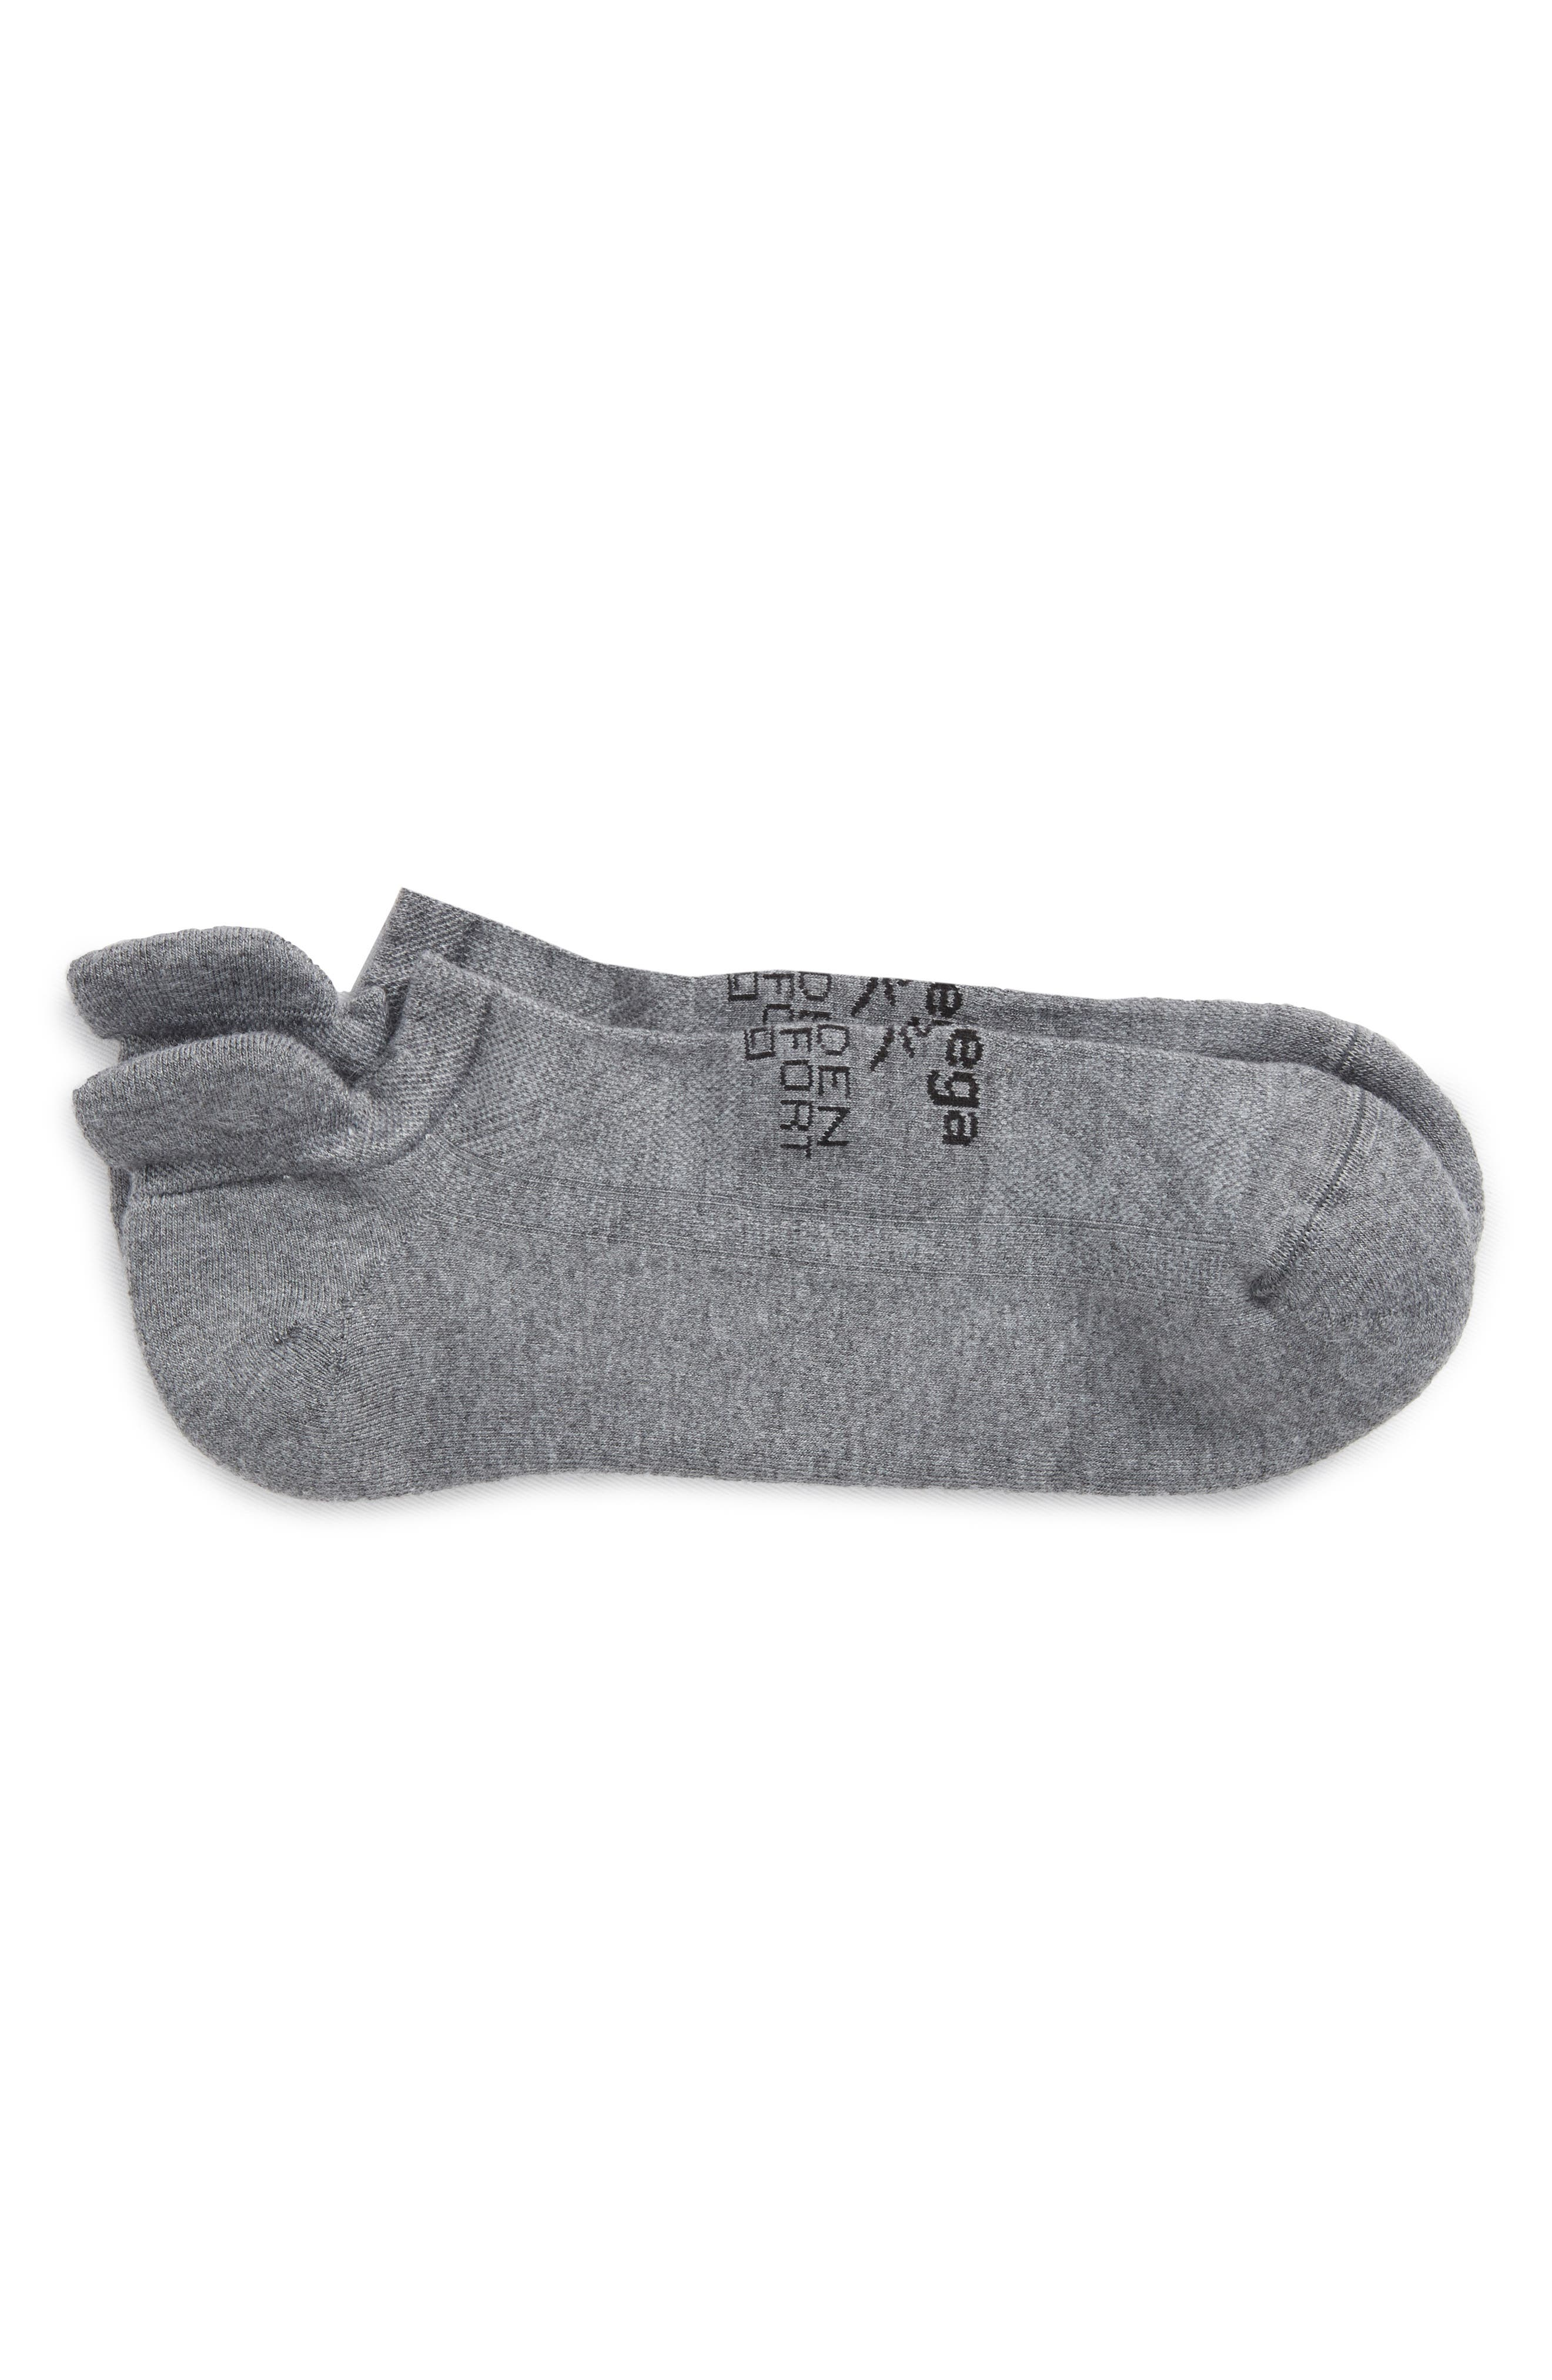 Hidden Comfort Socks,                             Main thumbnail 1, color,                             CHARCOAL